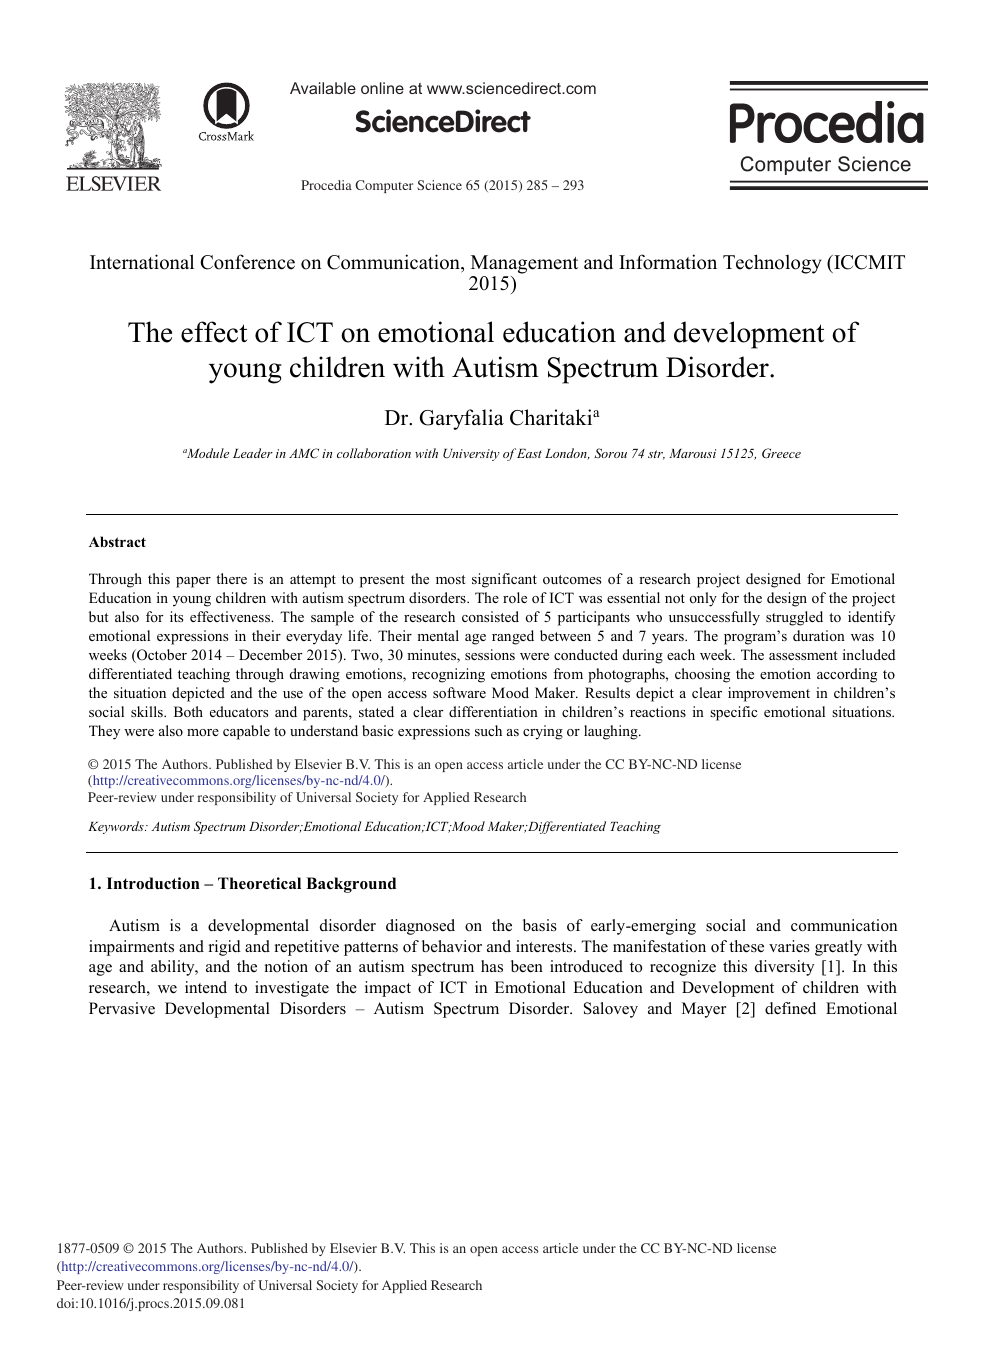 The Effect of ICT on Emotional Education and Development of